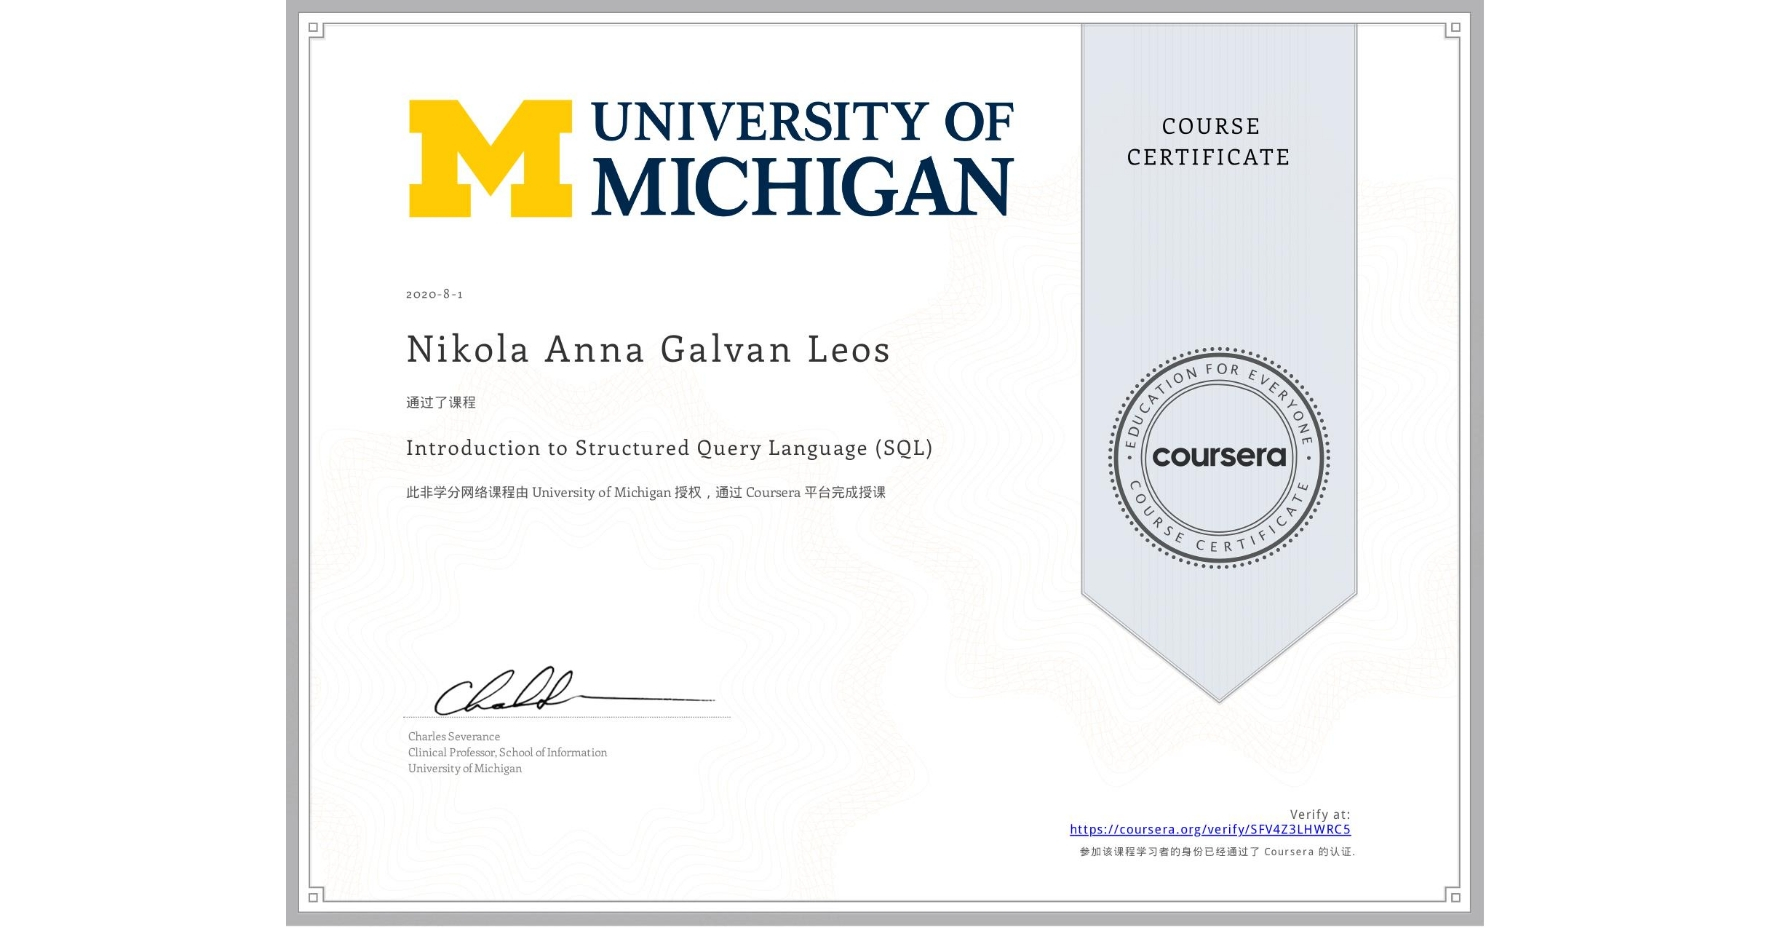 View certificate for Nikola Anna Galvan Leos, Introduction to Structured Query Language (SQL), an online non-credit course authorized by University of Michigan and offered through Coursera